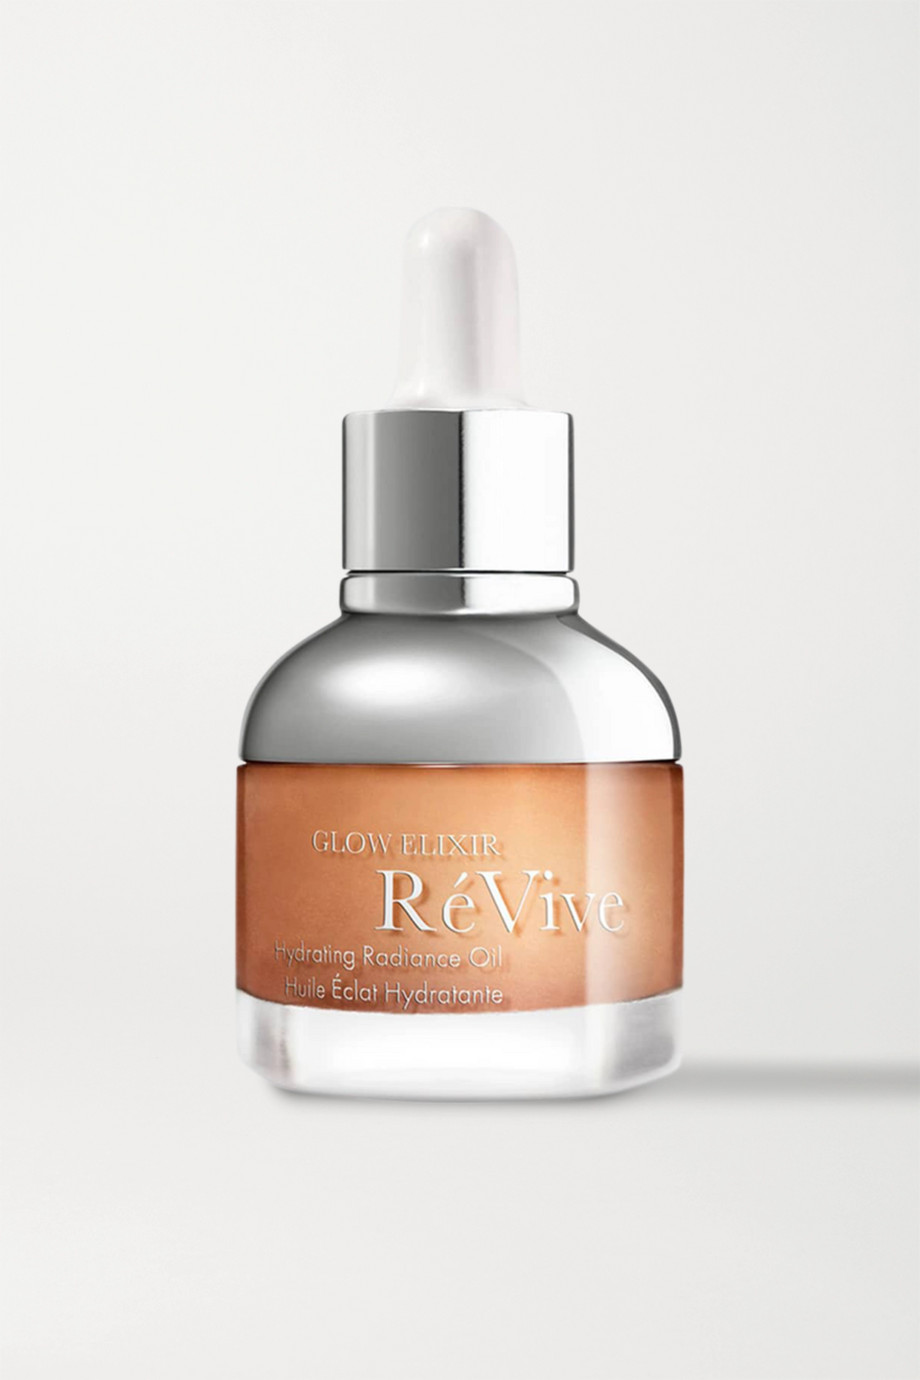 RéVive Glow Elixir​ Hydrating Radiance Oil, 30 ml – Gesichtsöl